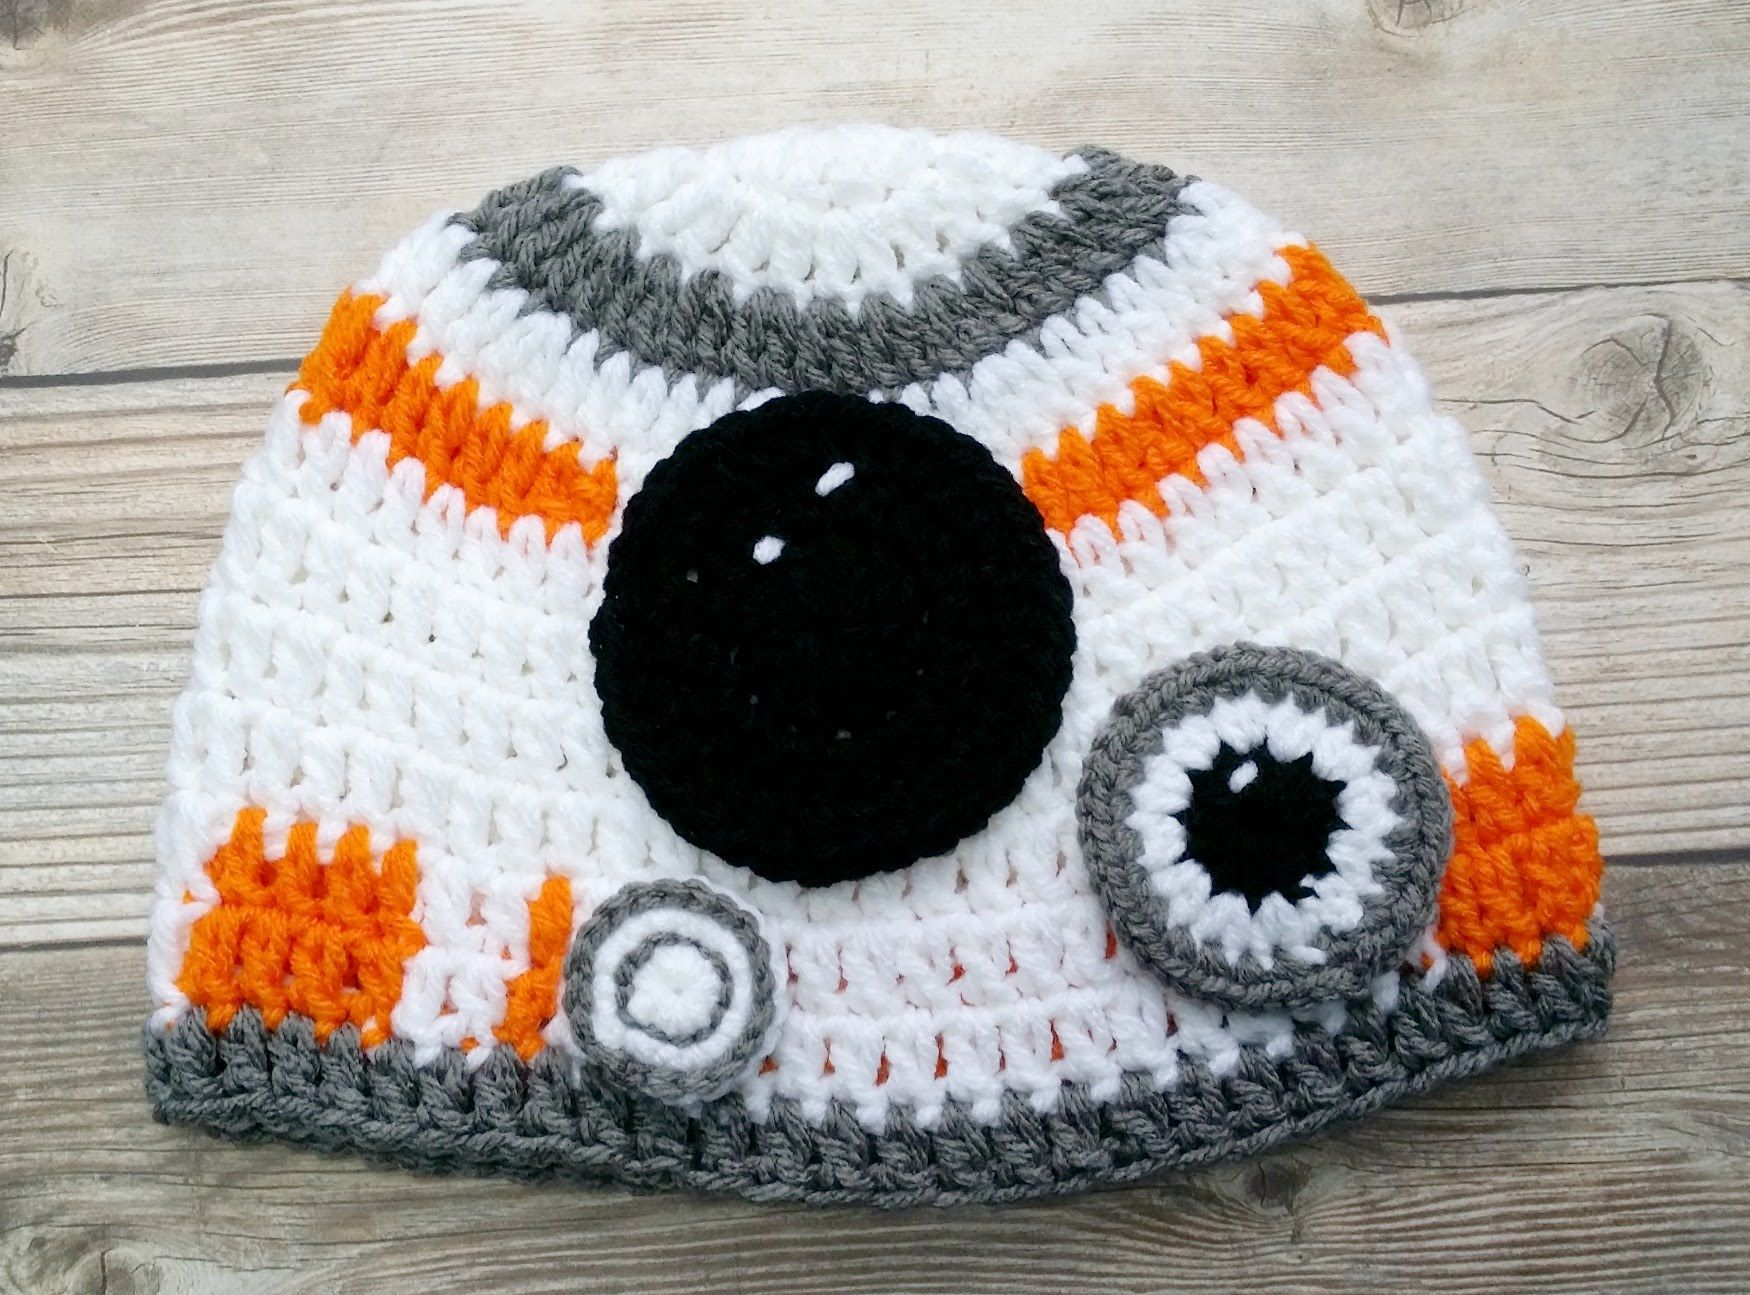 Crochet Hat Inspired By Star Wars The Force Awakens Video 1 Patrones De Sombreros De Ganchillo Crochet Hats Free Pattern Ganchillo Star Wars